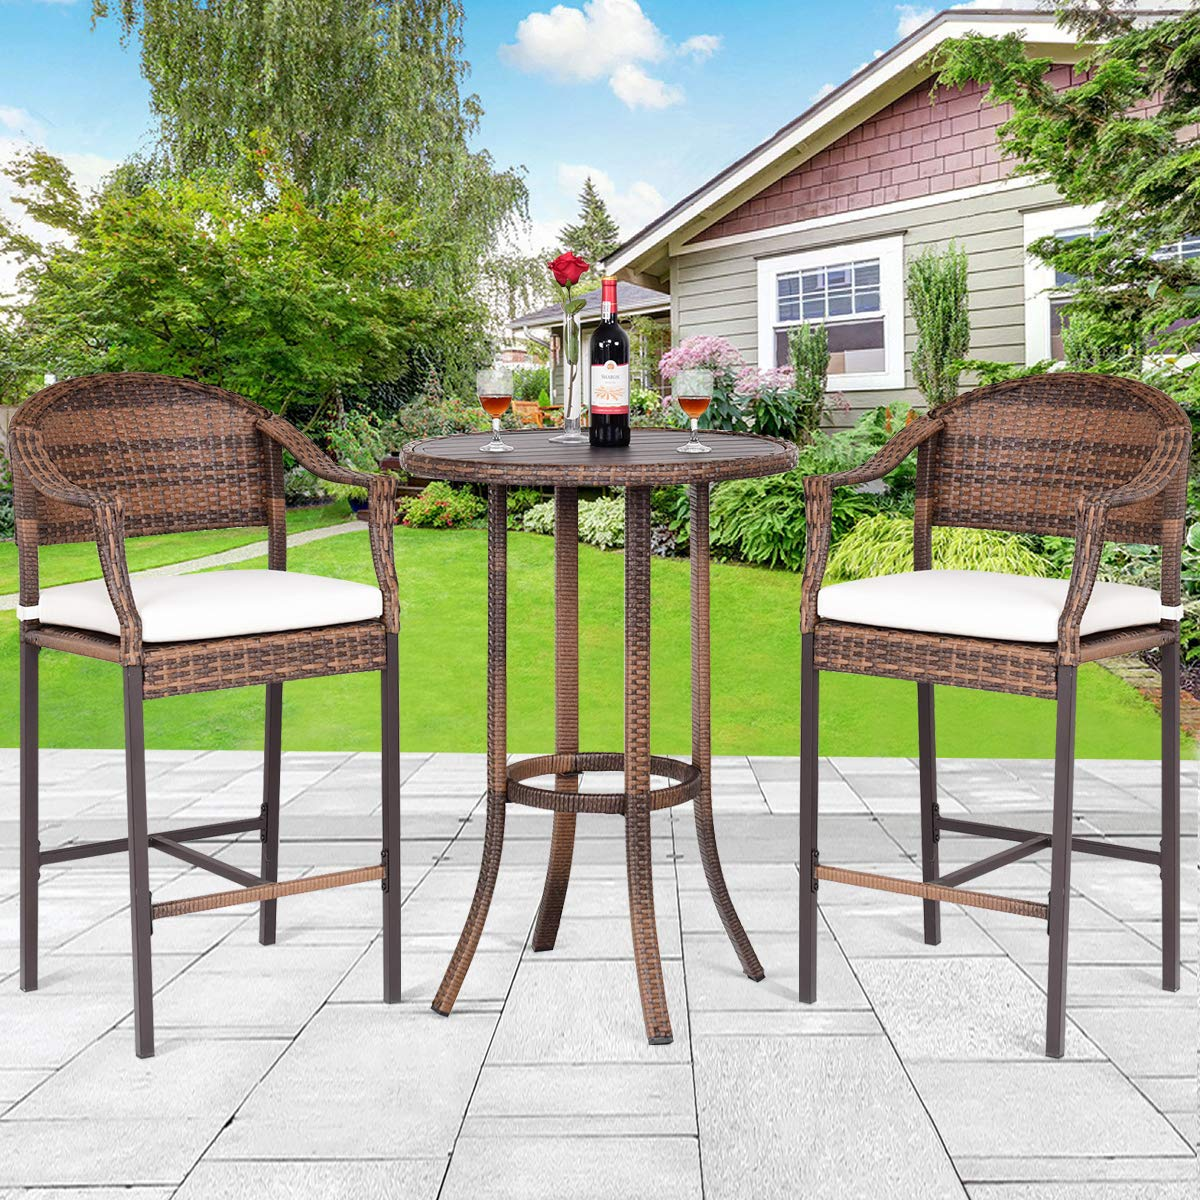 TANGKULA Patio Bar Set 3-Piece Wicker Rattan All Weahter Durable Poolside Balcony Garden Furniture Bar Height Outdoor Table and Chairs Set